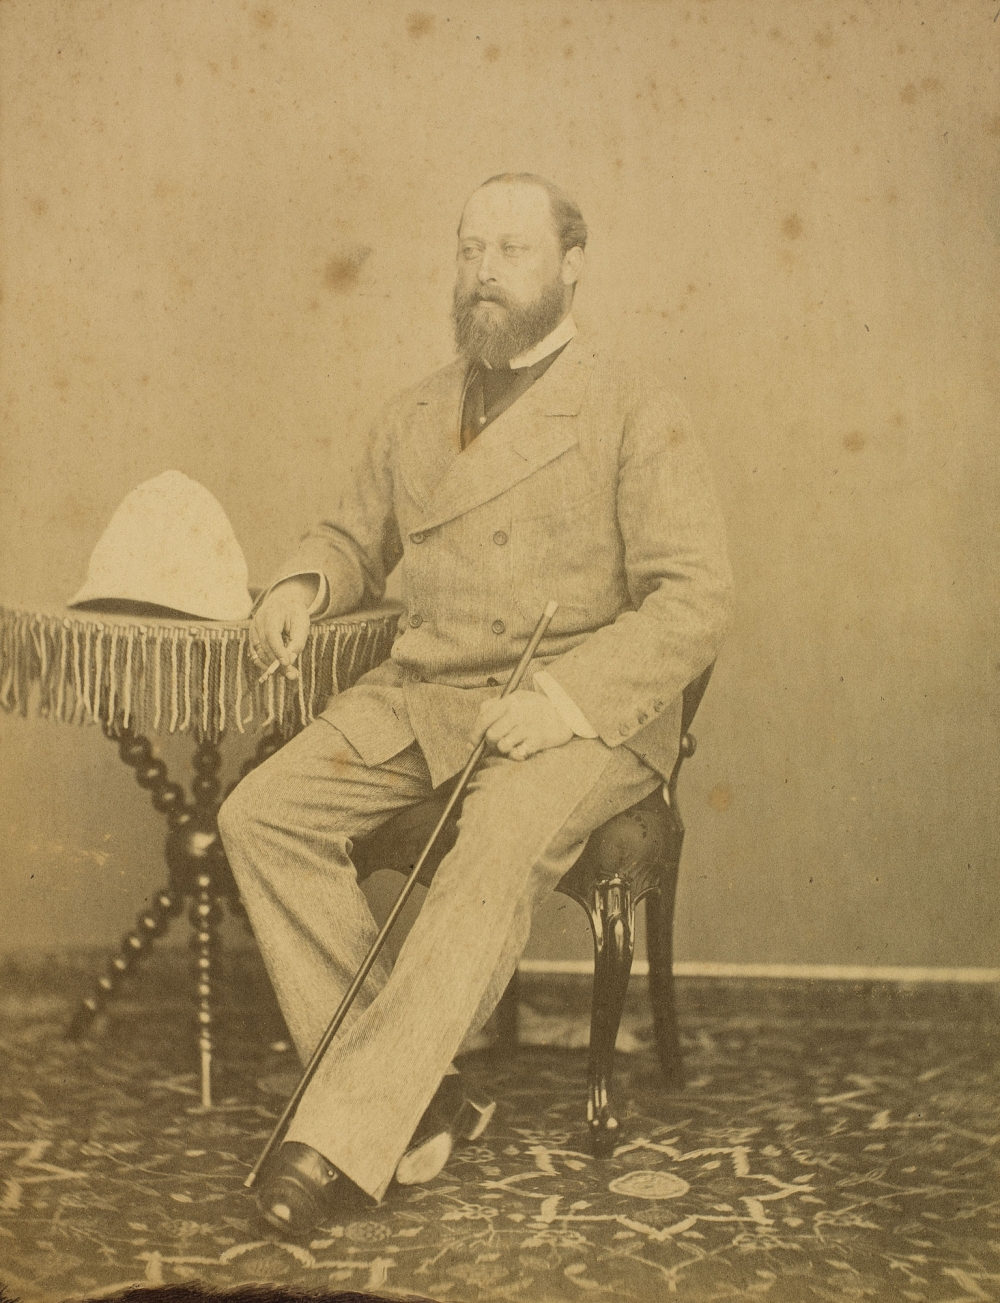 Photo of Prince of Wales (1841-1910) by RAM SINGH II, Photo: Royal Collection Trust/© Her Majesty Queen Elizabeth II 2021